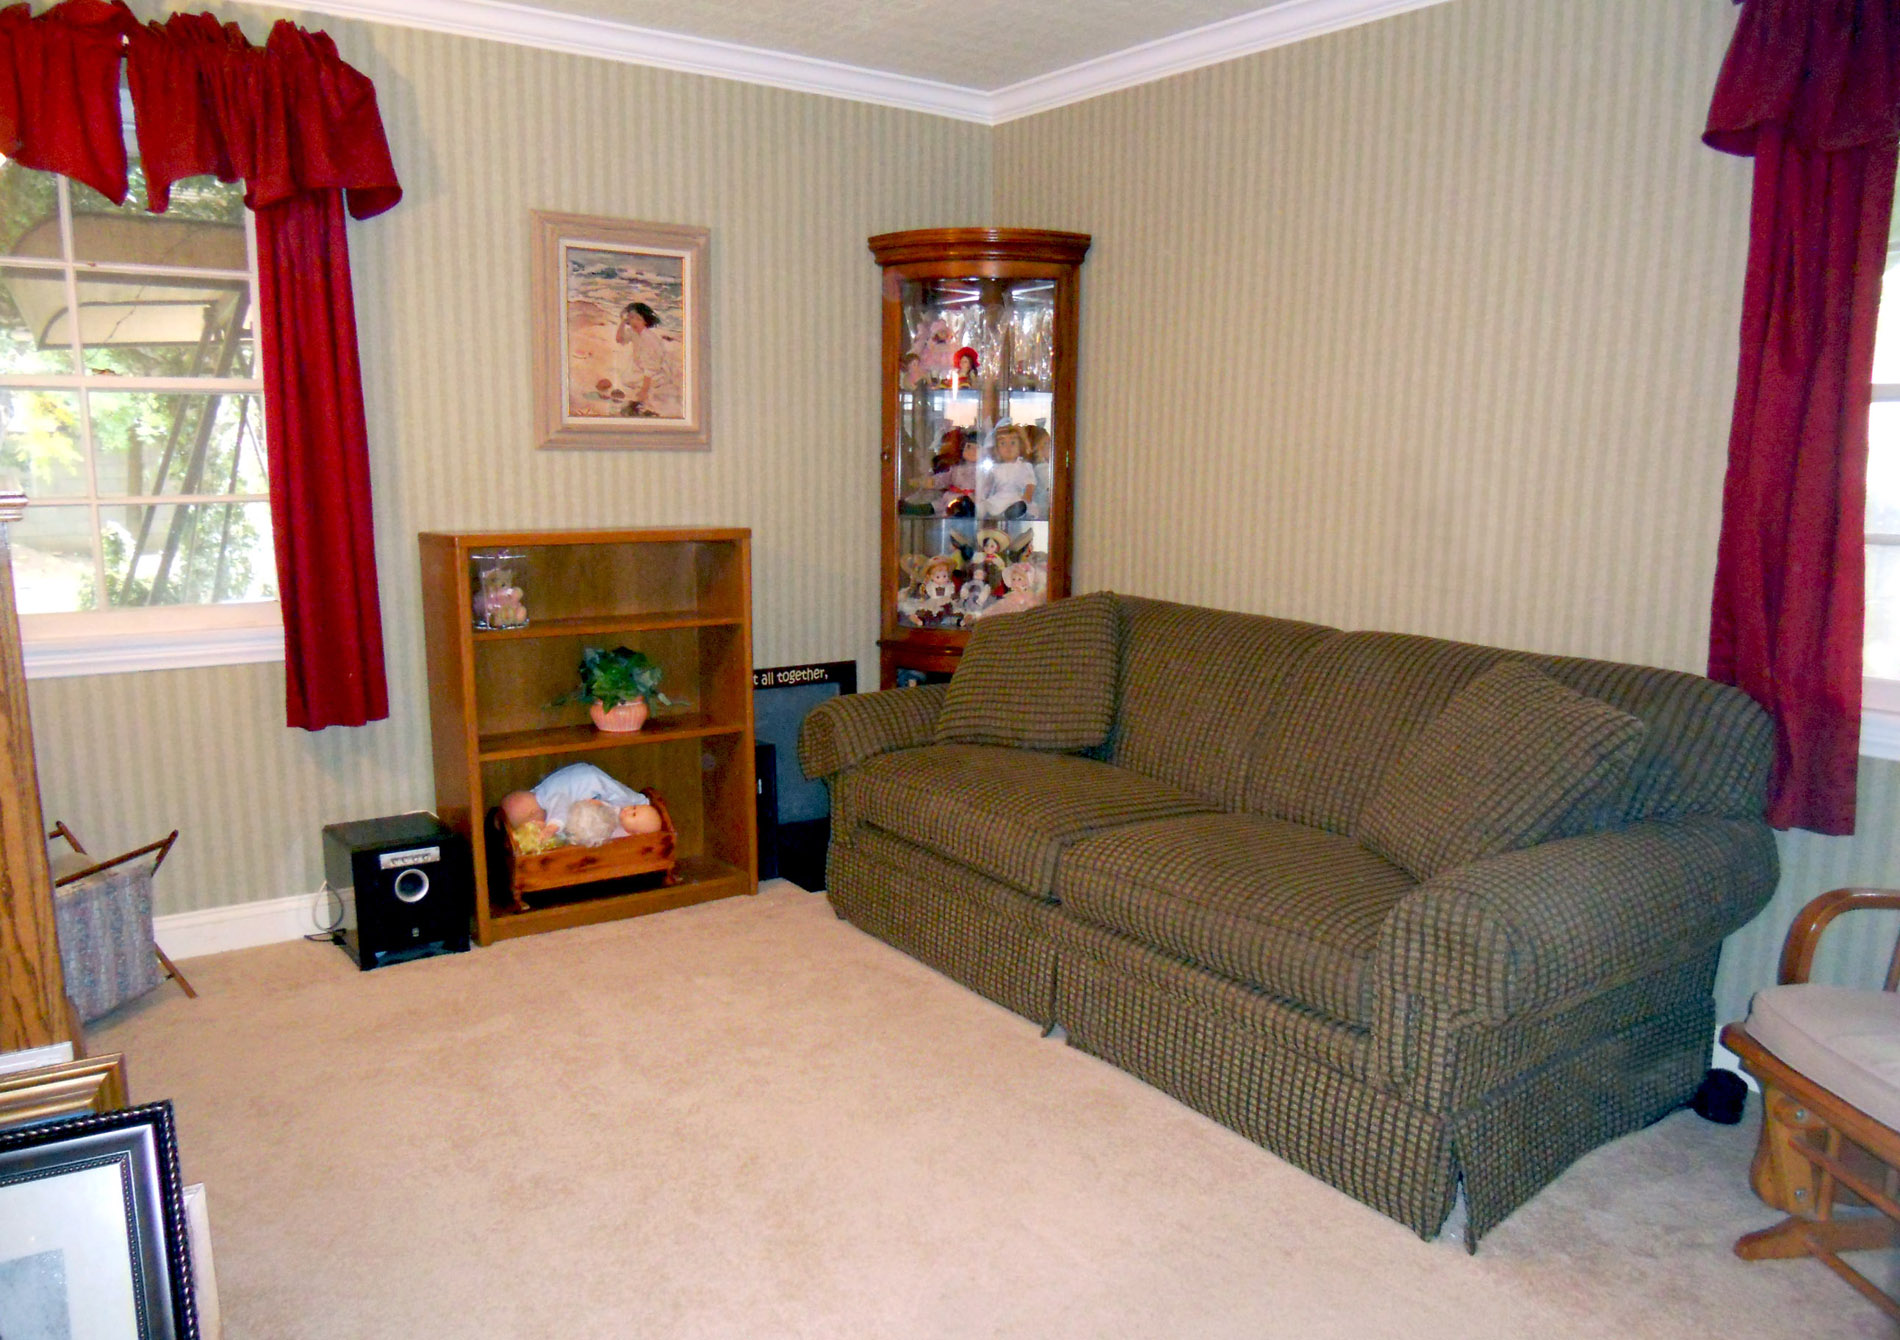 This bedroom (one of three all with carpet) has two closets, crown molding, and overlooks the beautiful backyard.